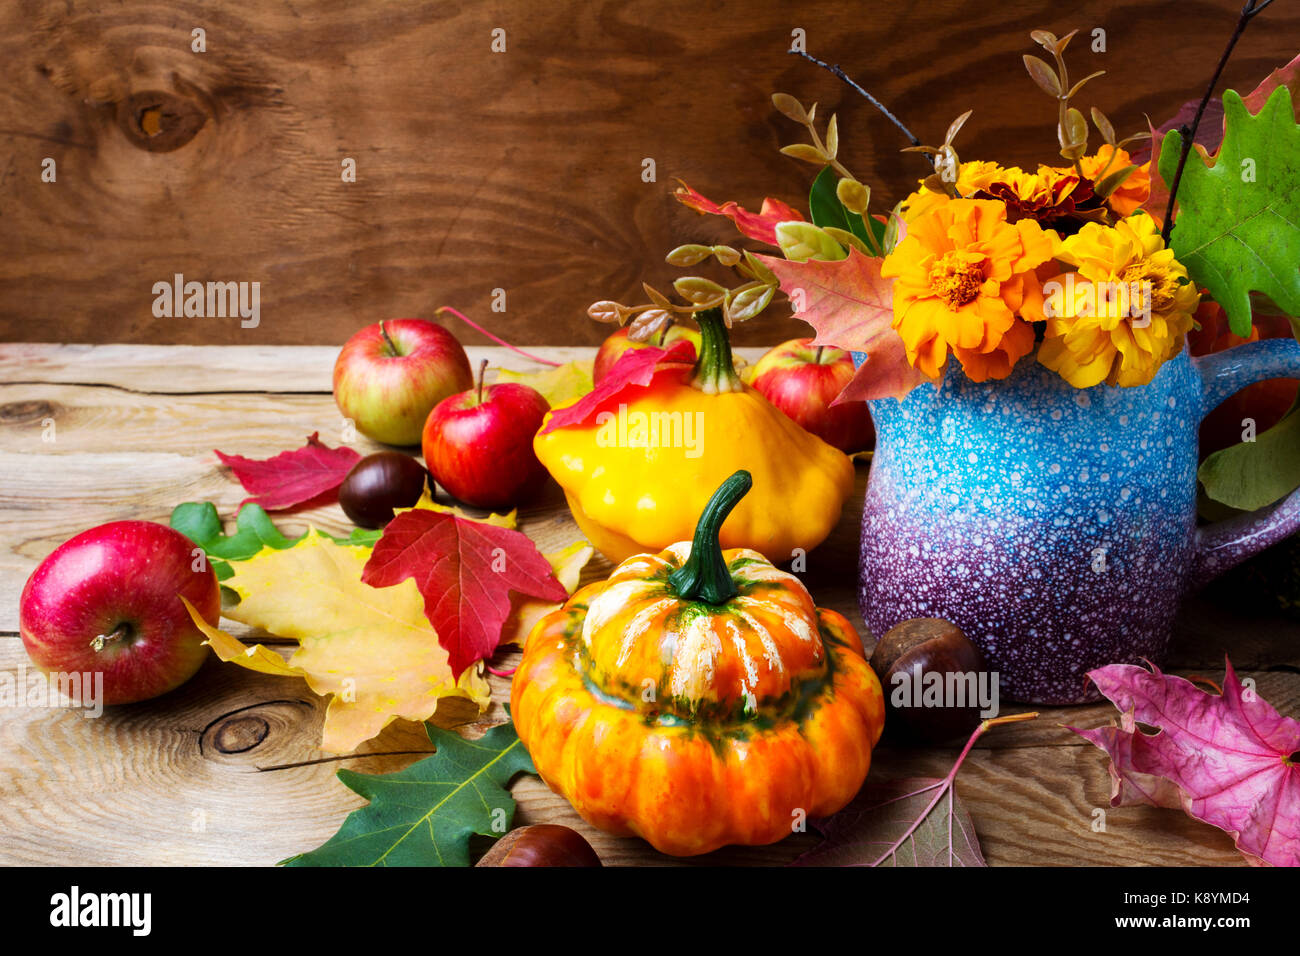 Rustic Thanksgiving Table Centerpiece With Apples Pumpkins And Marigold Flowers Fall Greeting Background Close Up